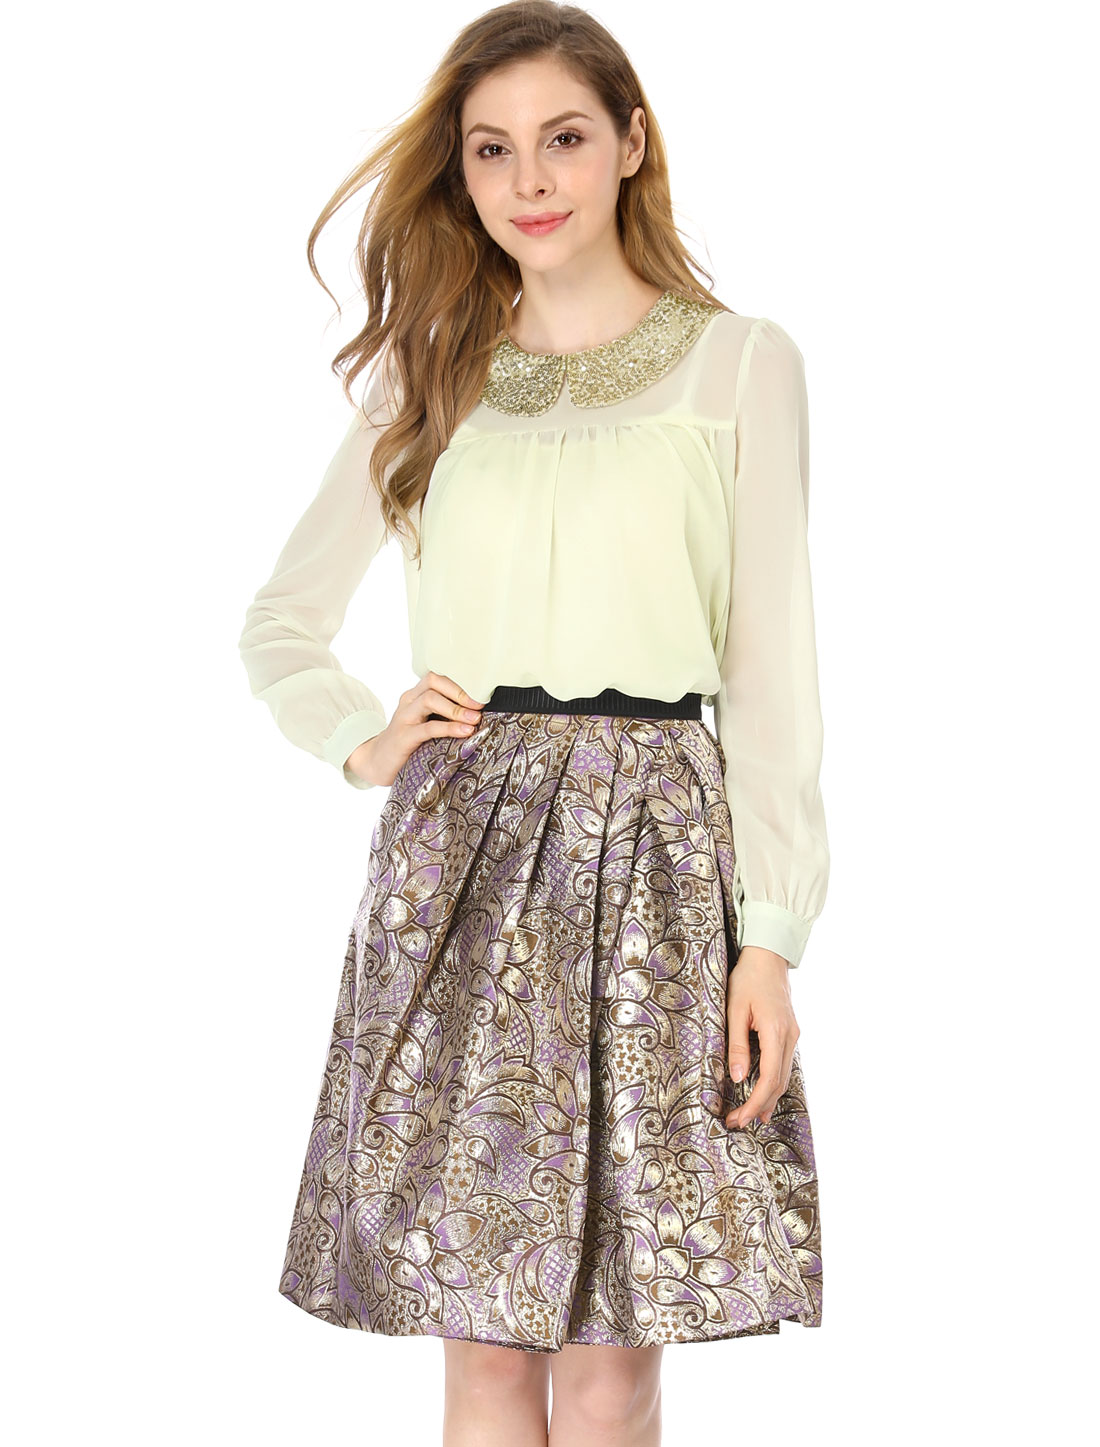 Ladies Long Sleeve Peter Pan Collar Chiffon Shining Sequined Shirt Beige S